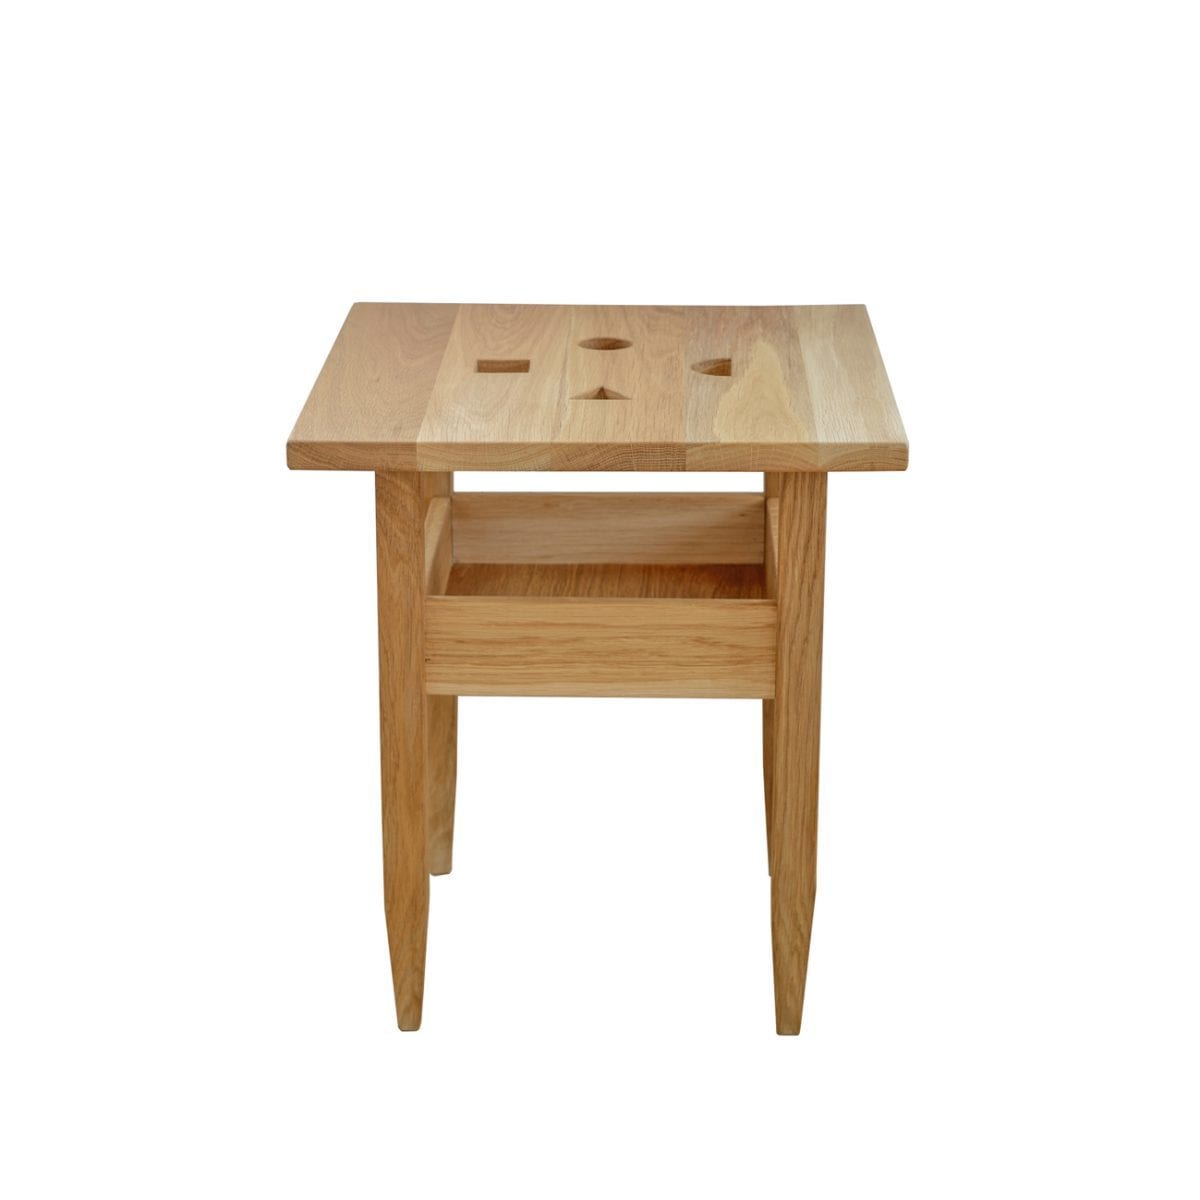 wood_and_paper_taboret_duo